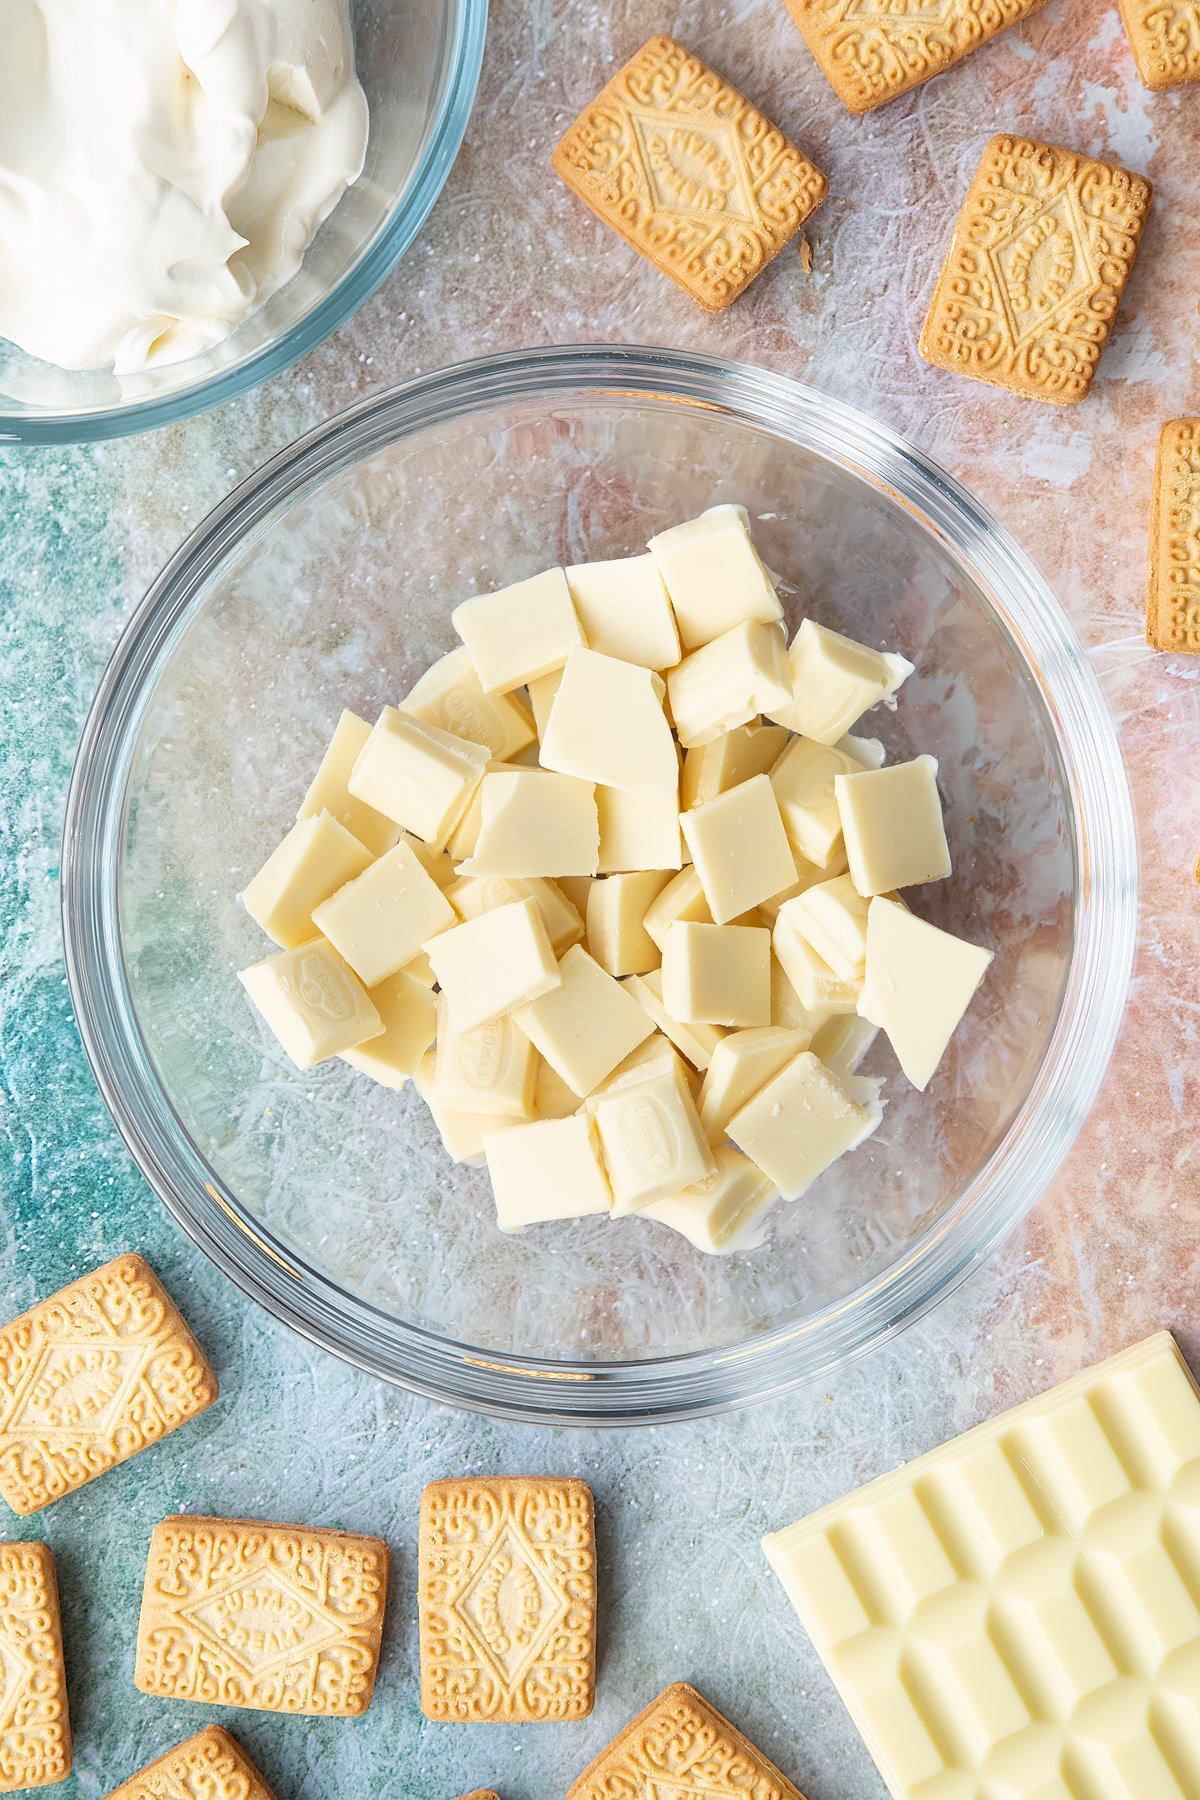 Overhead shot of pieces of white chocolate in a large clear bowl